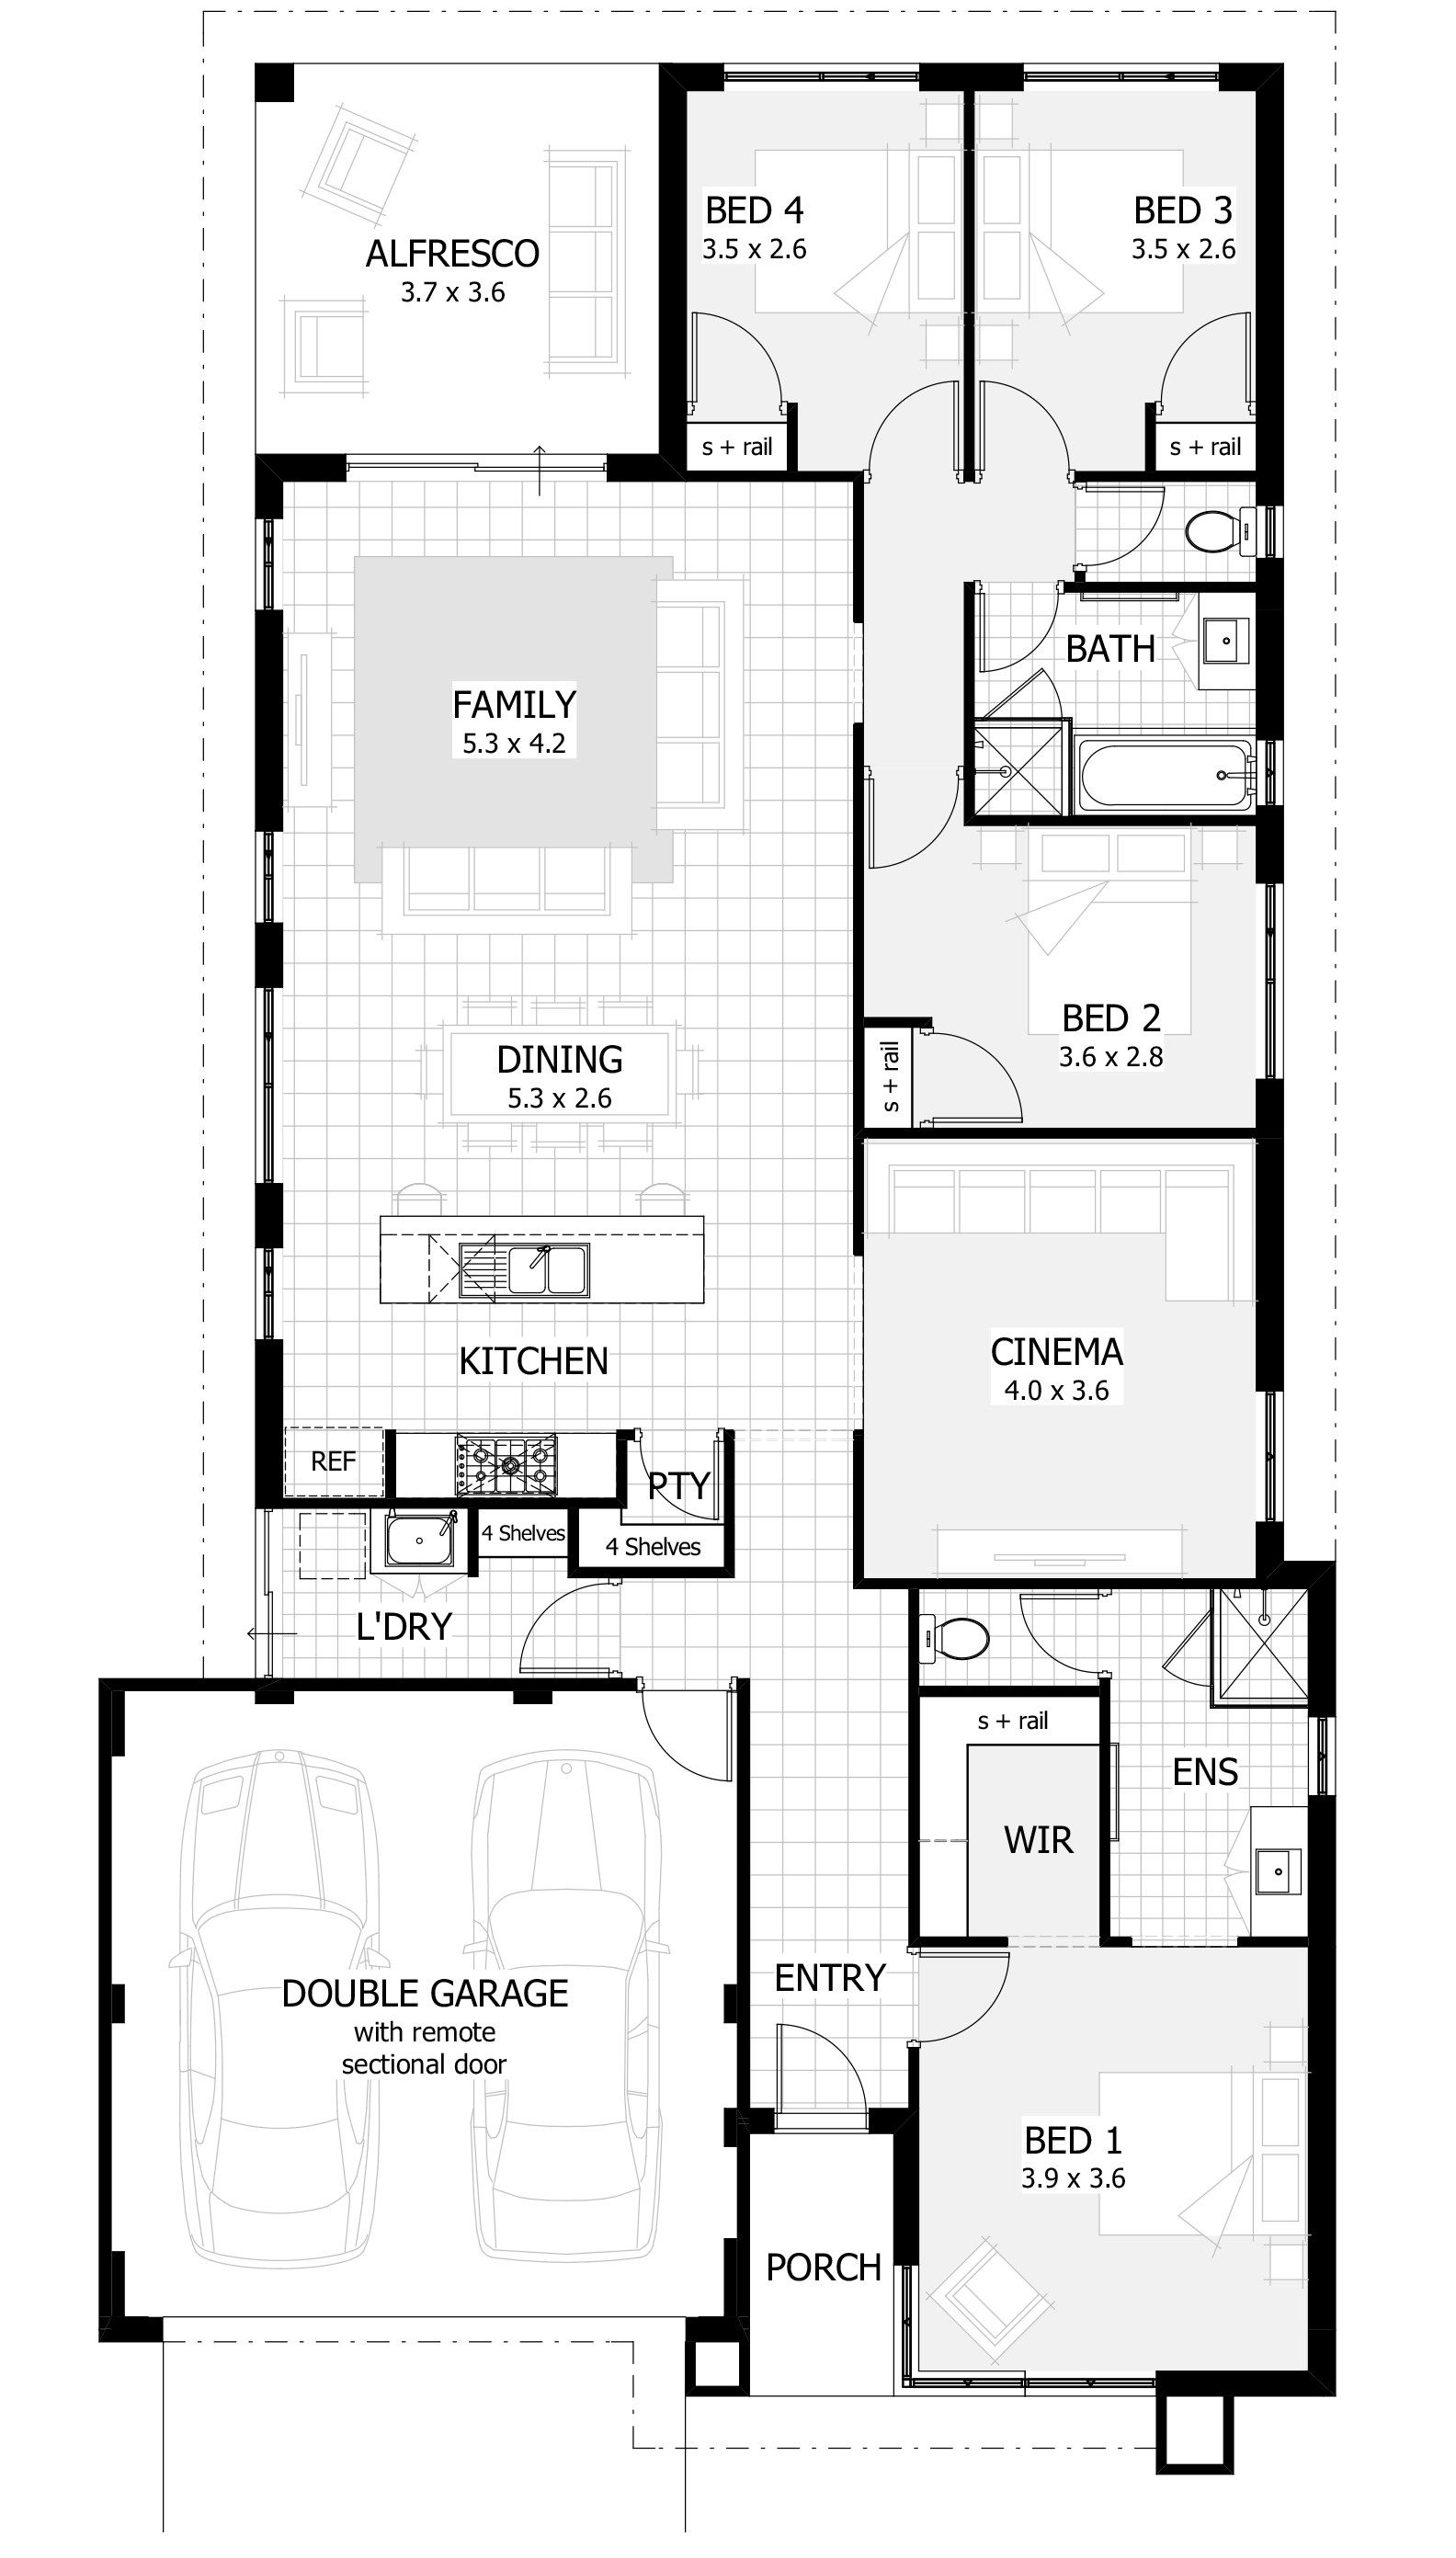 home single story floor plans small lot homes plans perth ... on 3-story victorian house plans, new 4 bedroom home plans, 1 story 3 bedroom house plans, 28x26 house plans, 1 1 2 story house plans, 1 story 6 bedroom house plans, best one story house plans, four story home plans, four family house plans, 1 story log home plans, 1 story 1 bedroom house plans, 1 story house floor plans, one story expandable house plans, 1 story mediterranean house plans, 4-bedroom ranch house plans, 1 story deck plans, custom 5 bedroom home plans, small 4 bedroom home plans, single story country house plans, one story square house plans,